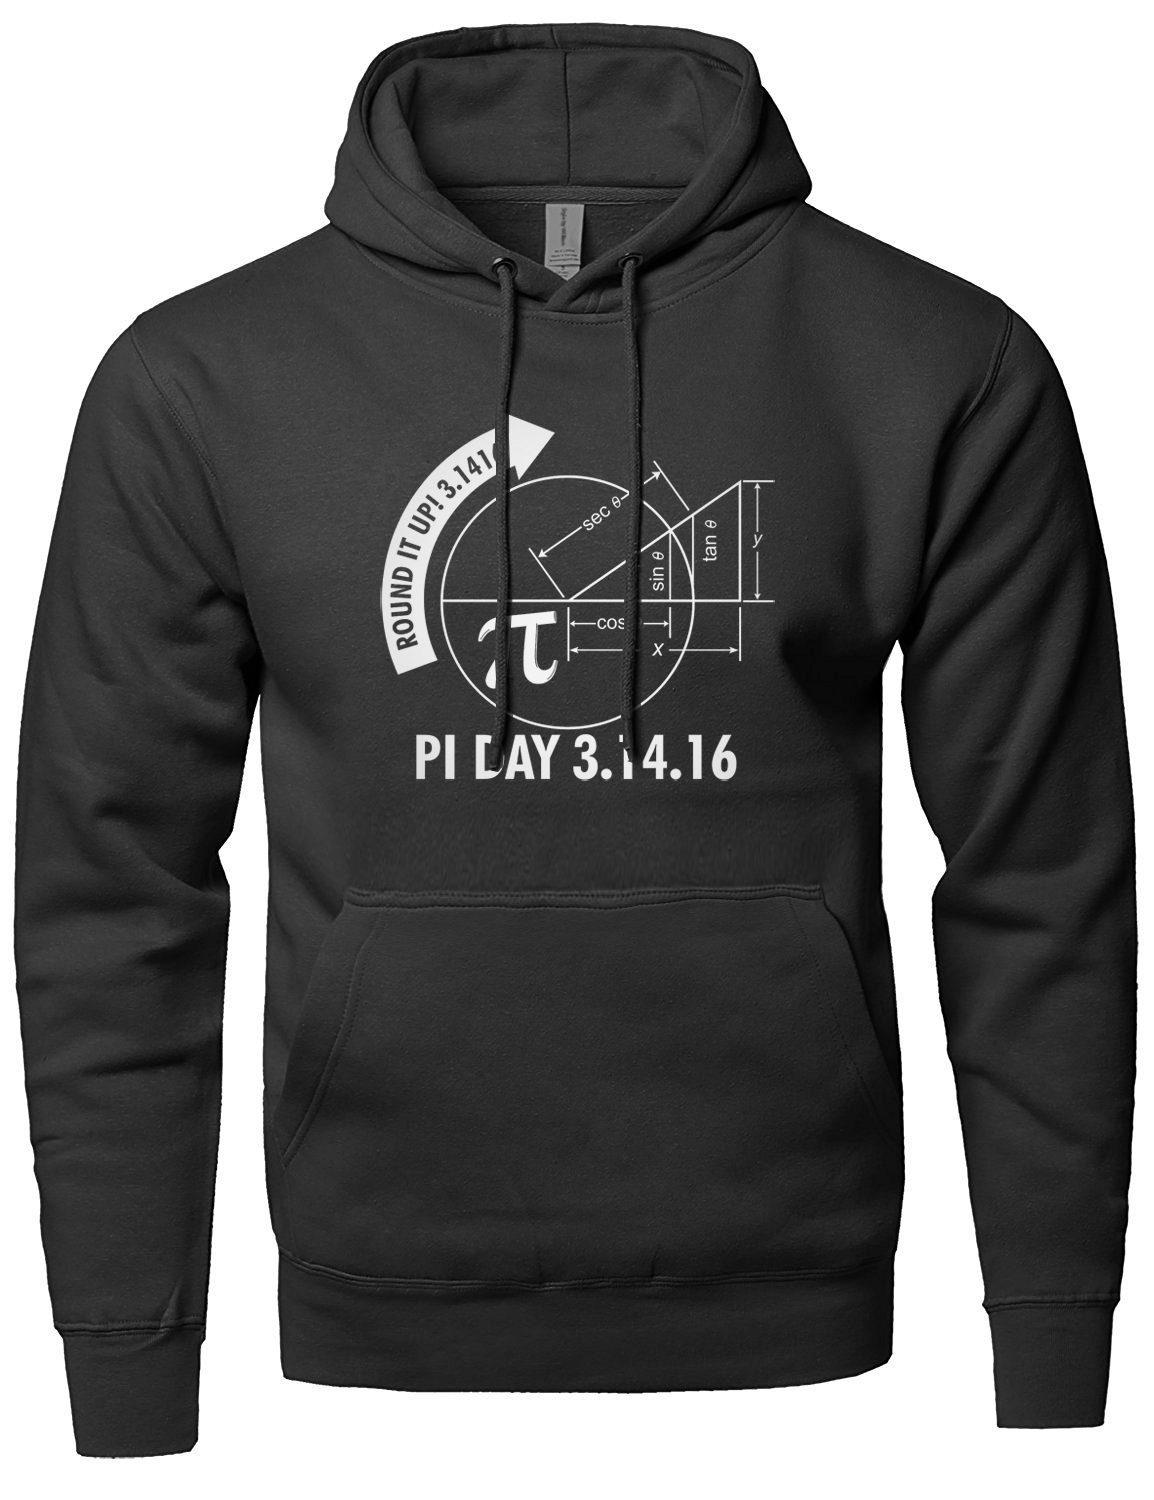 Pi Day 2018 3.1416 Round It Up Math Graph STEM sweatshirt men fashion autumn 2018 male brand clothing hooded mens streetwear mma